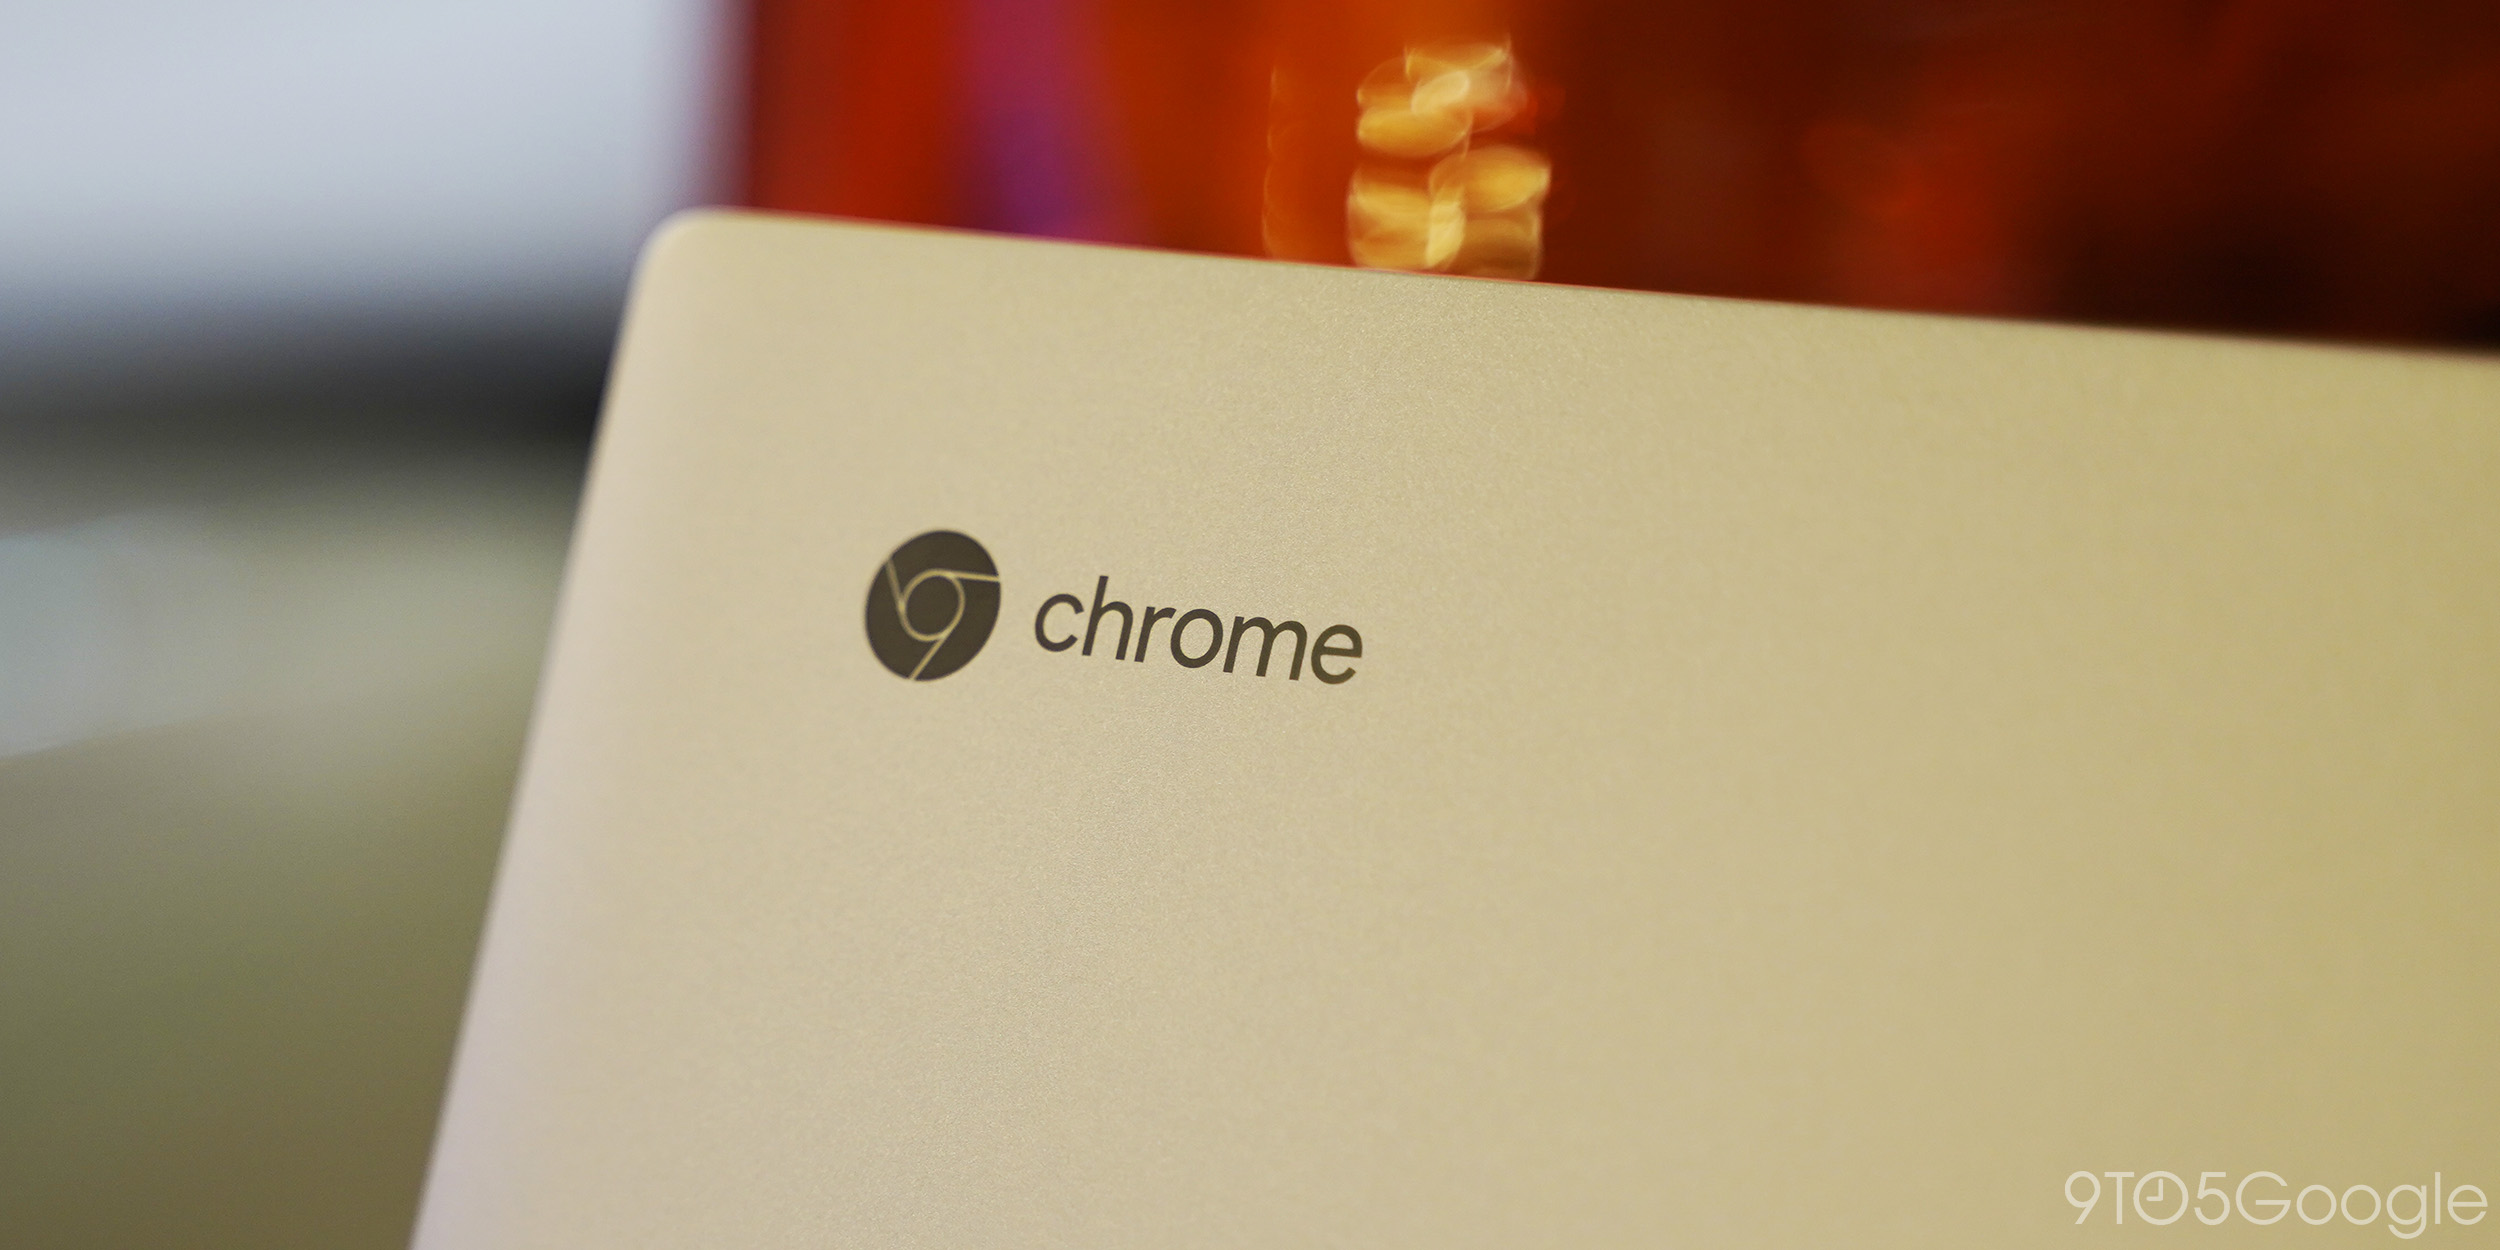 Chrome OS to add support for USB tethering from iPhone in a future update